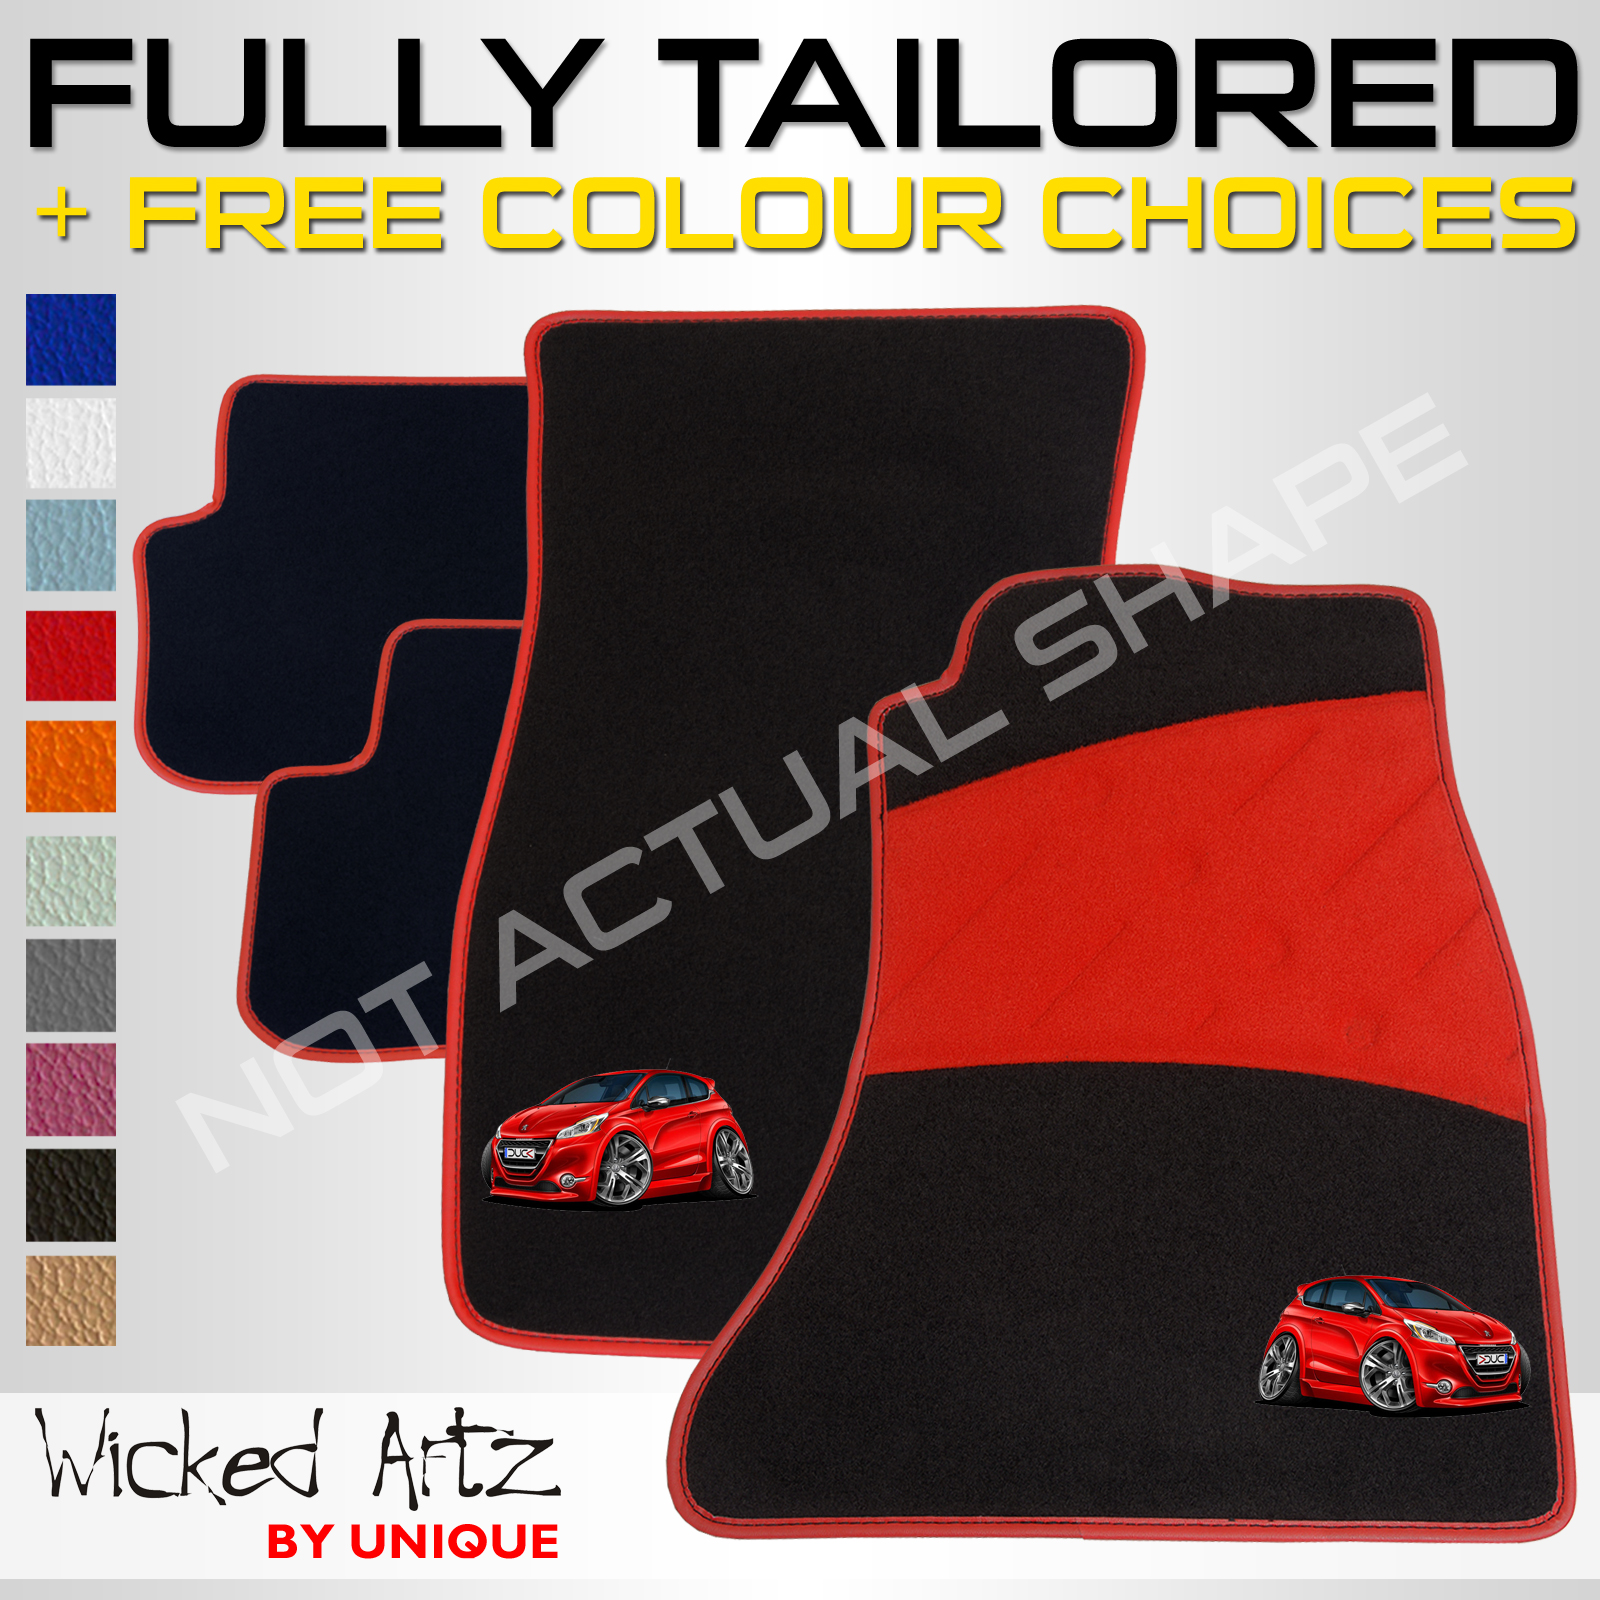 peugeot 208 gti (2012 onwards) car mats fully tailored + customise